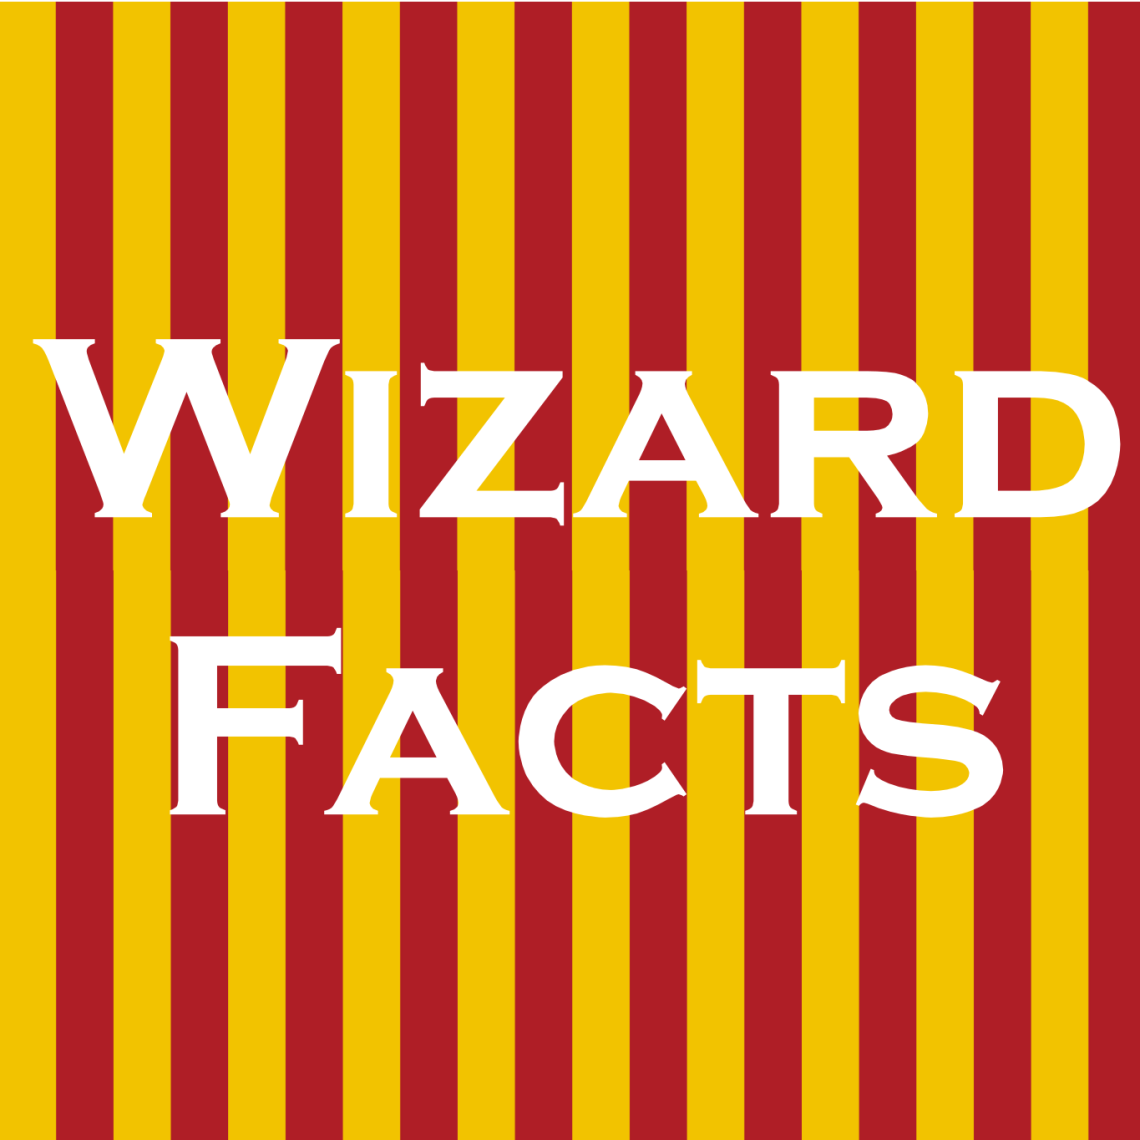 wizardfacts_card-page001.png